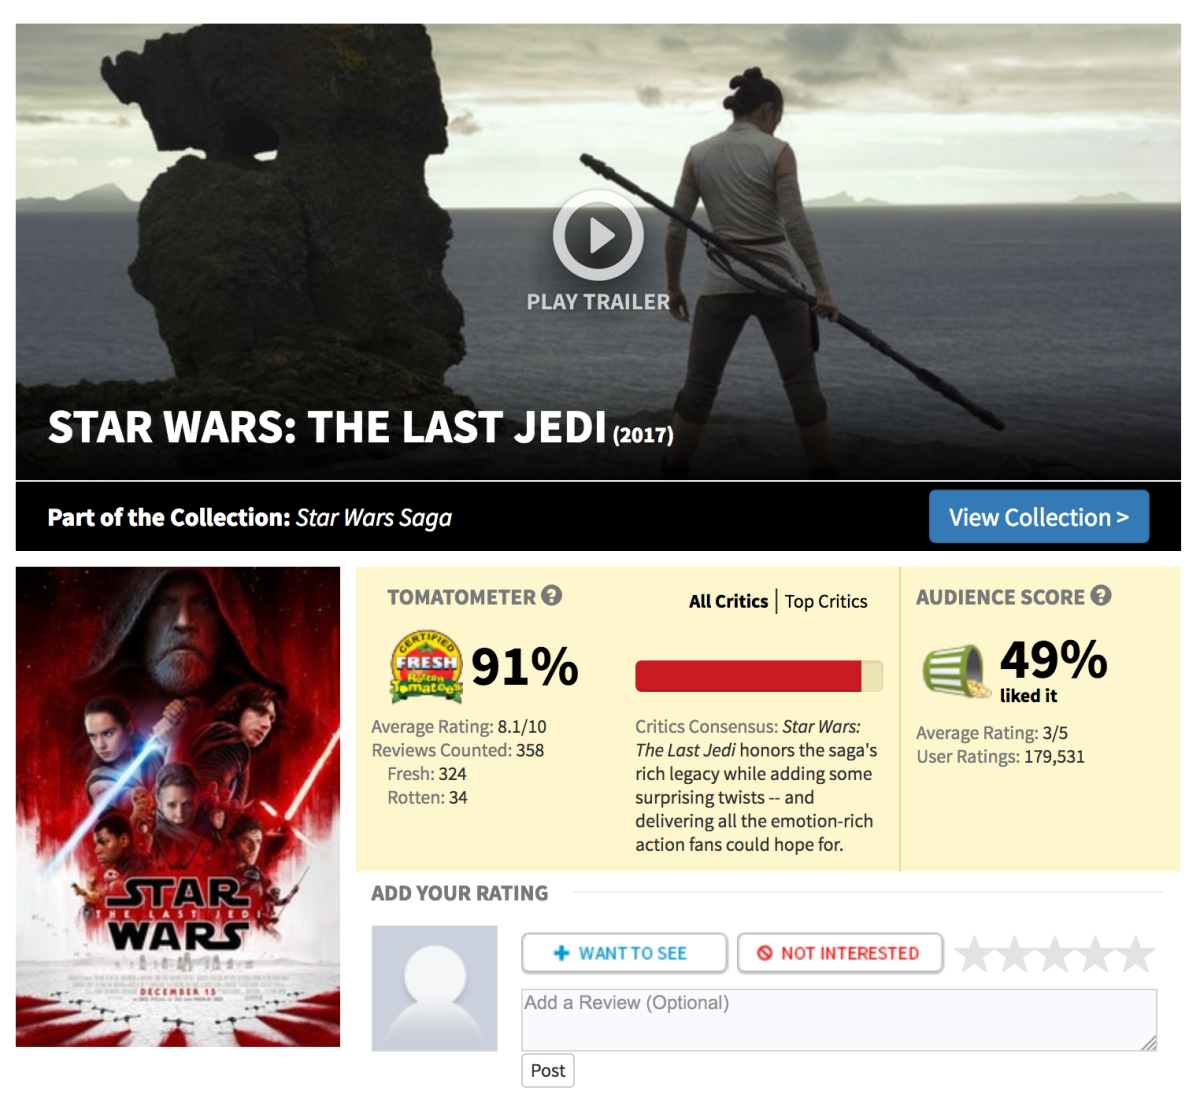 Why is there such a high difference in numbers between critics and fans?